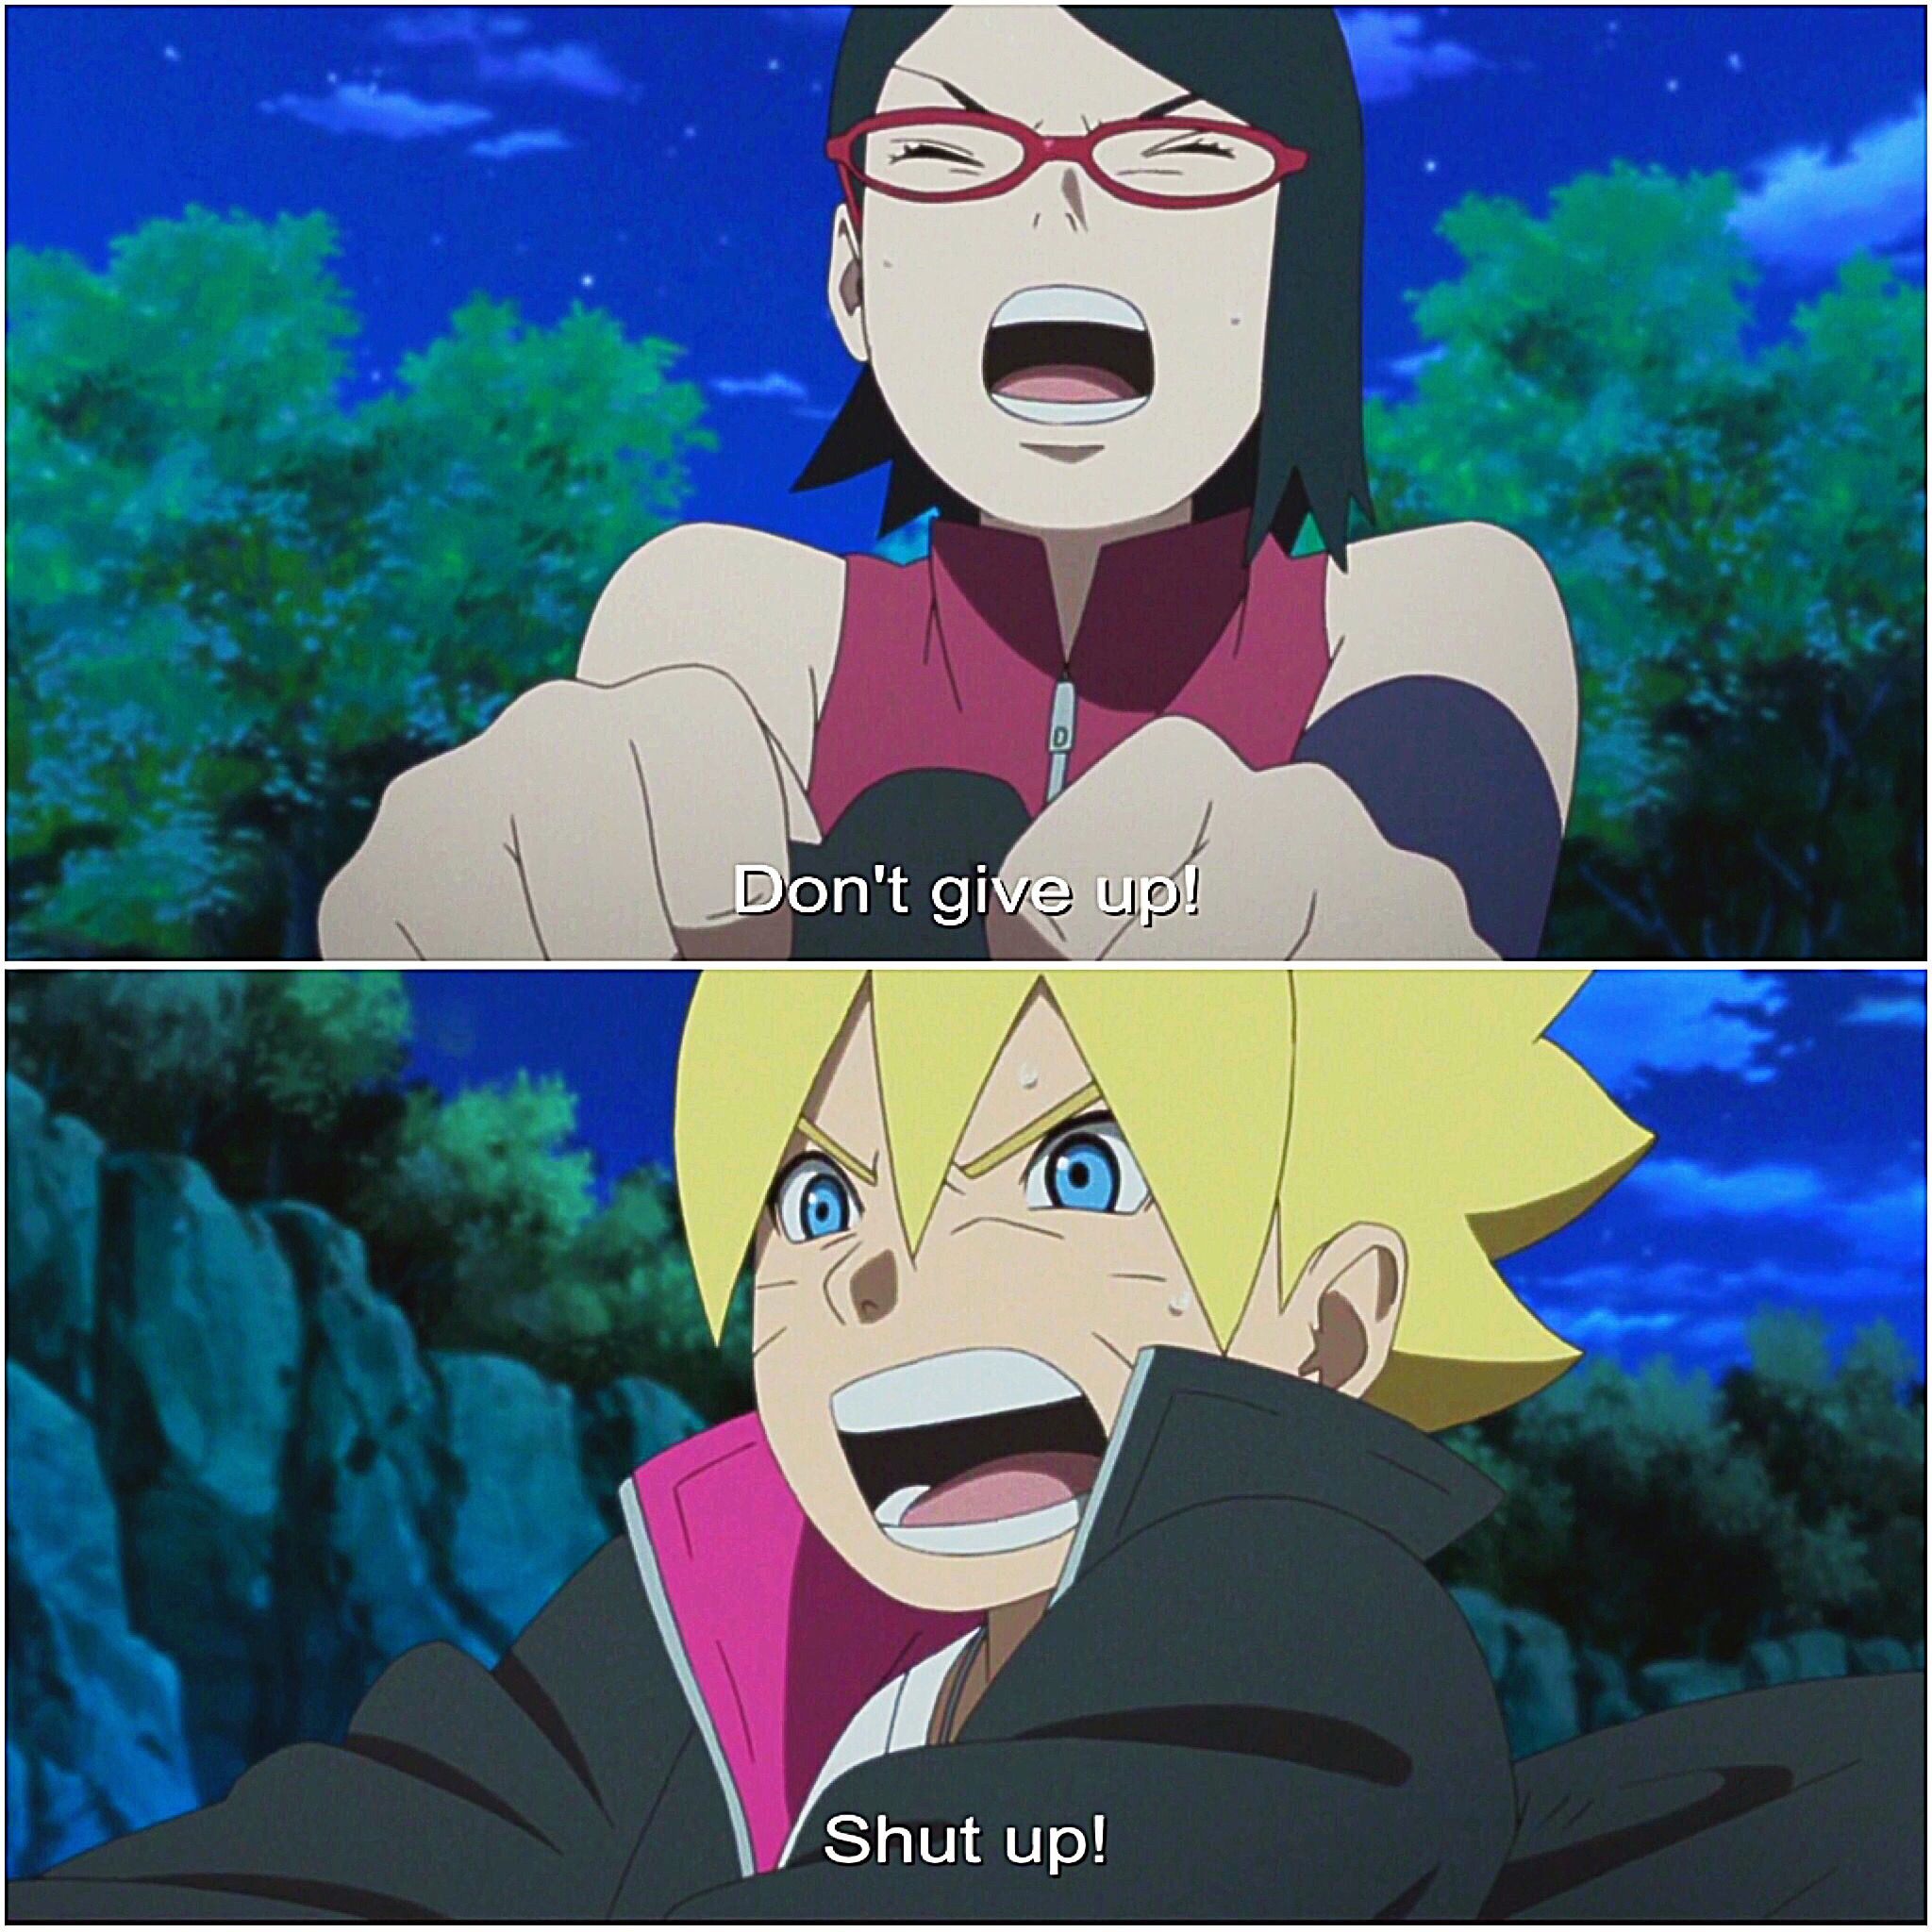 Naruto Shippuden Episode 34 - Year of Clean Water